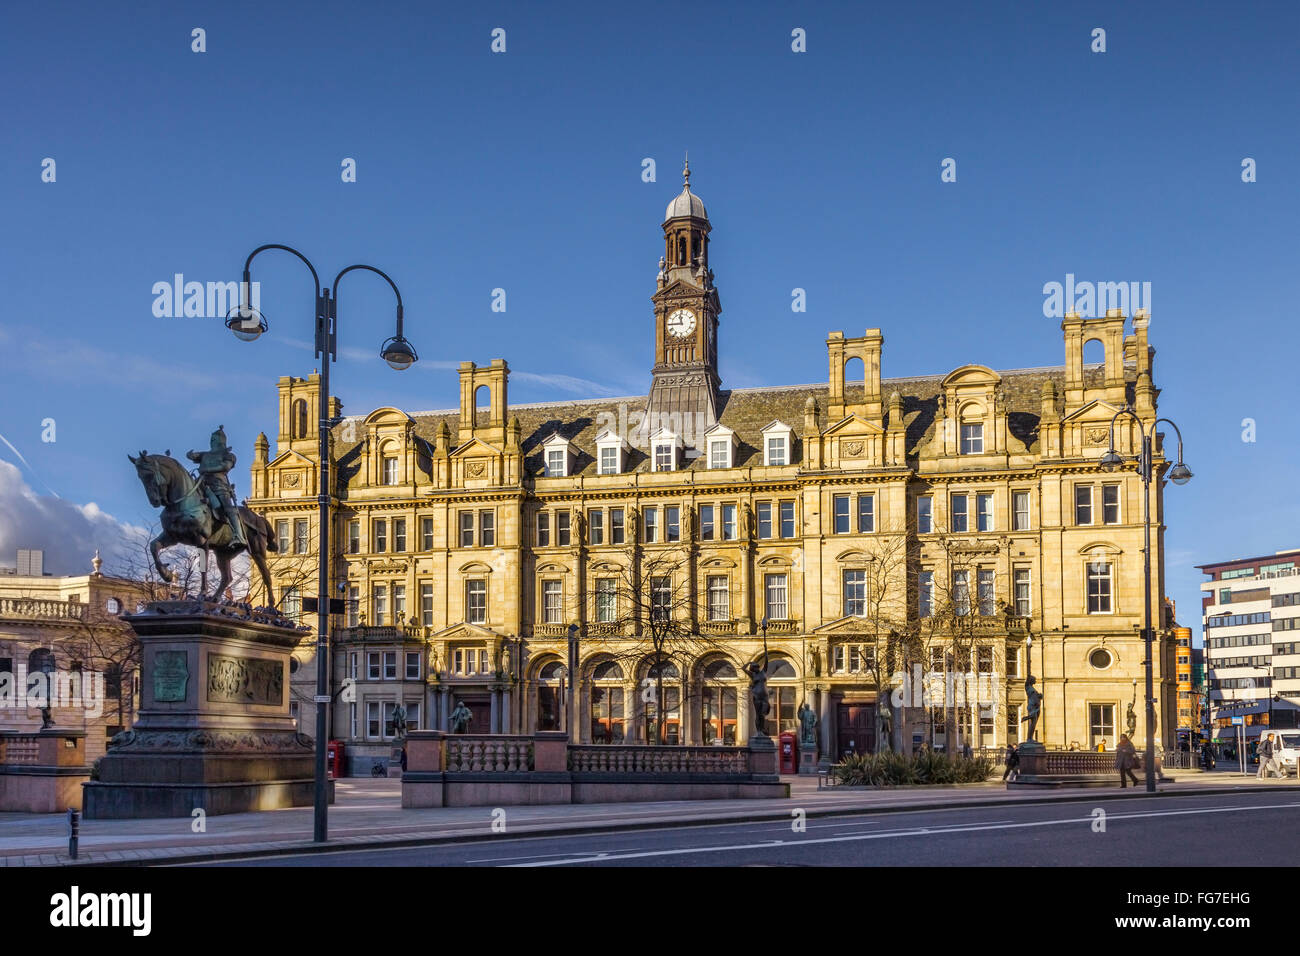 The Old Post Office, City Square, Leeds, West Yorkshire, England, UK, on a sunny winter day - Stock Image